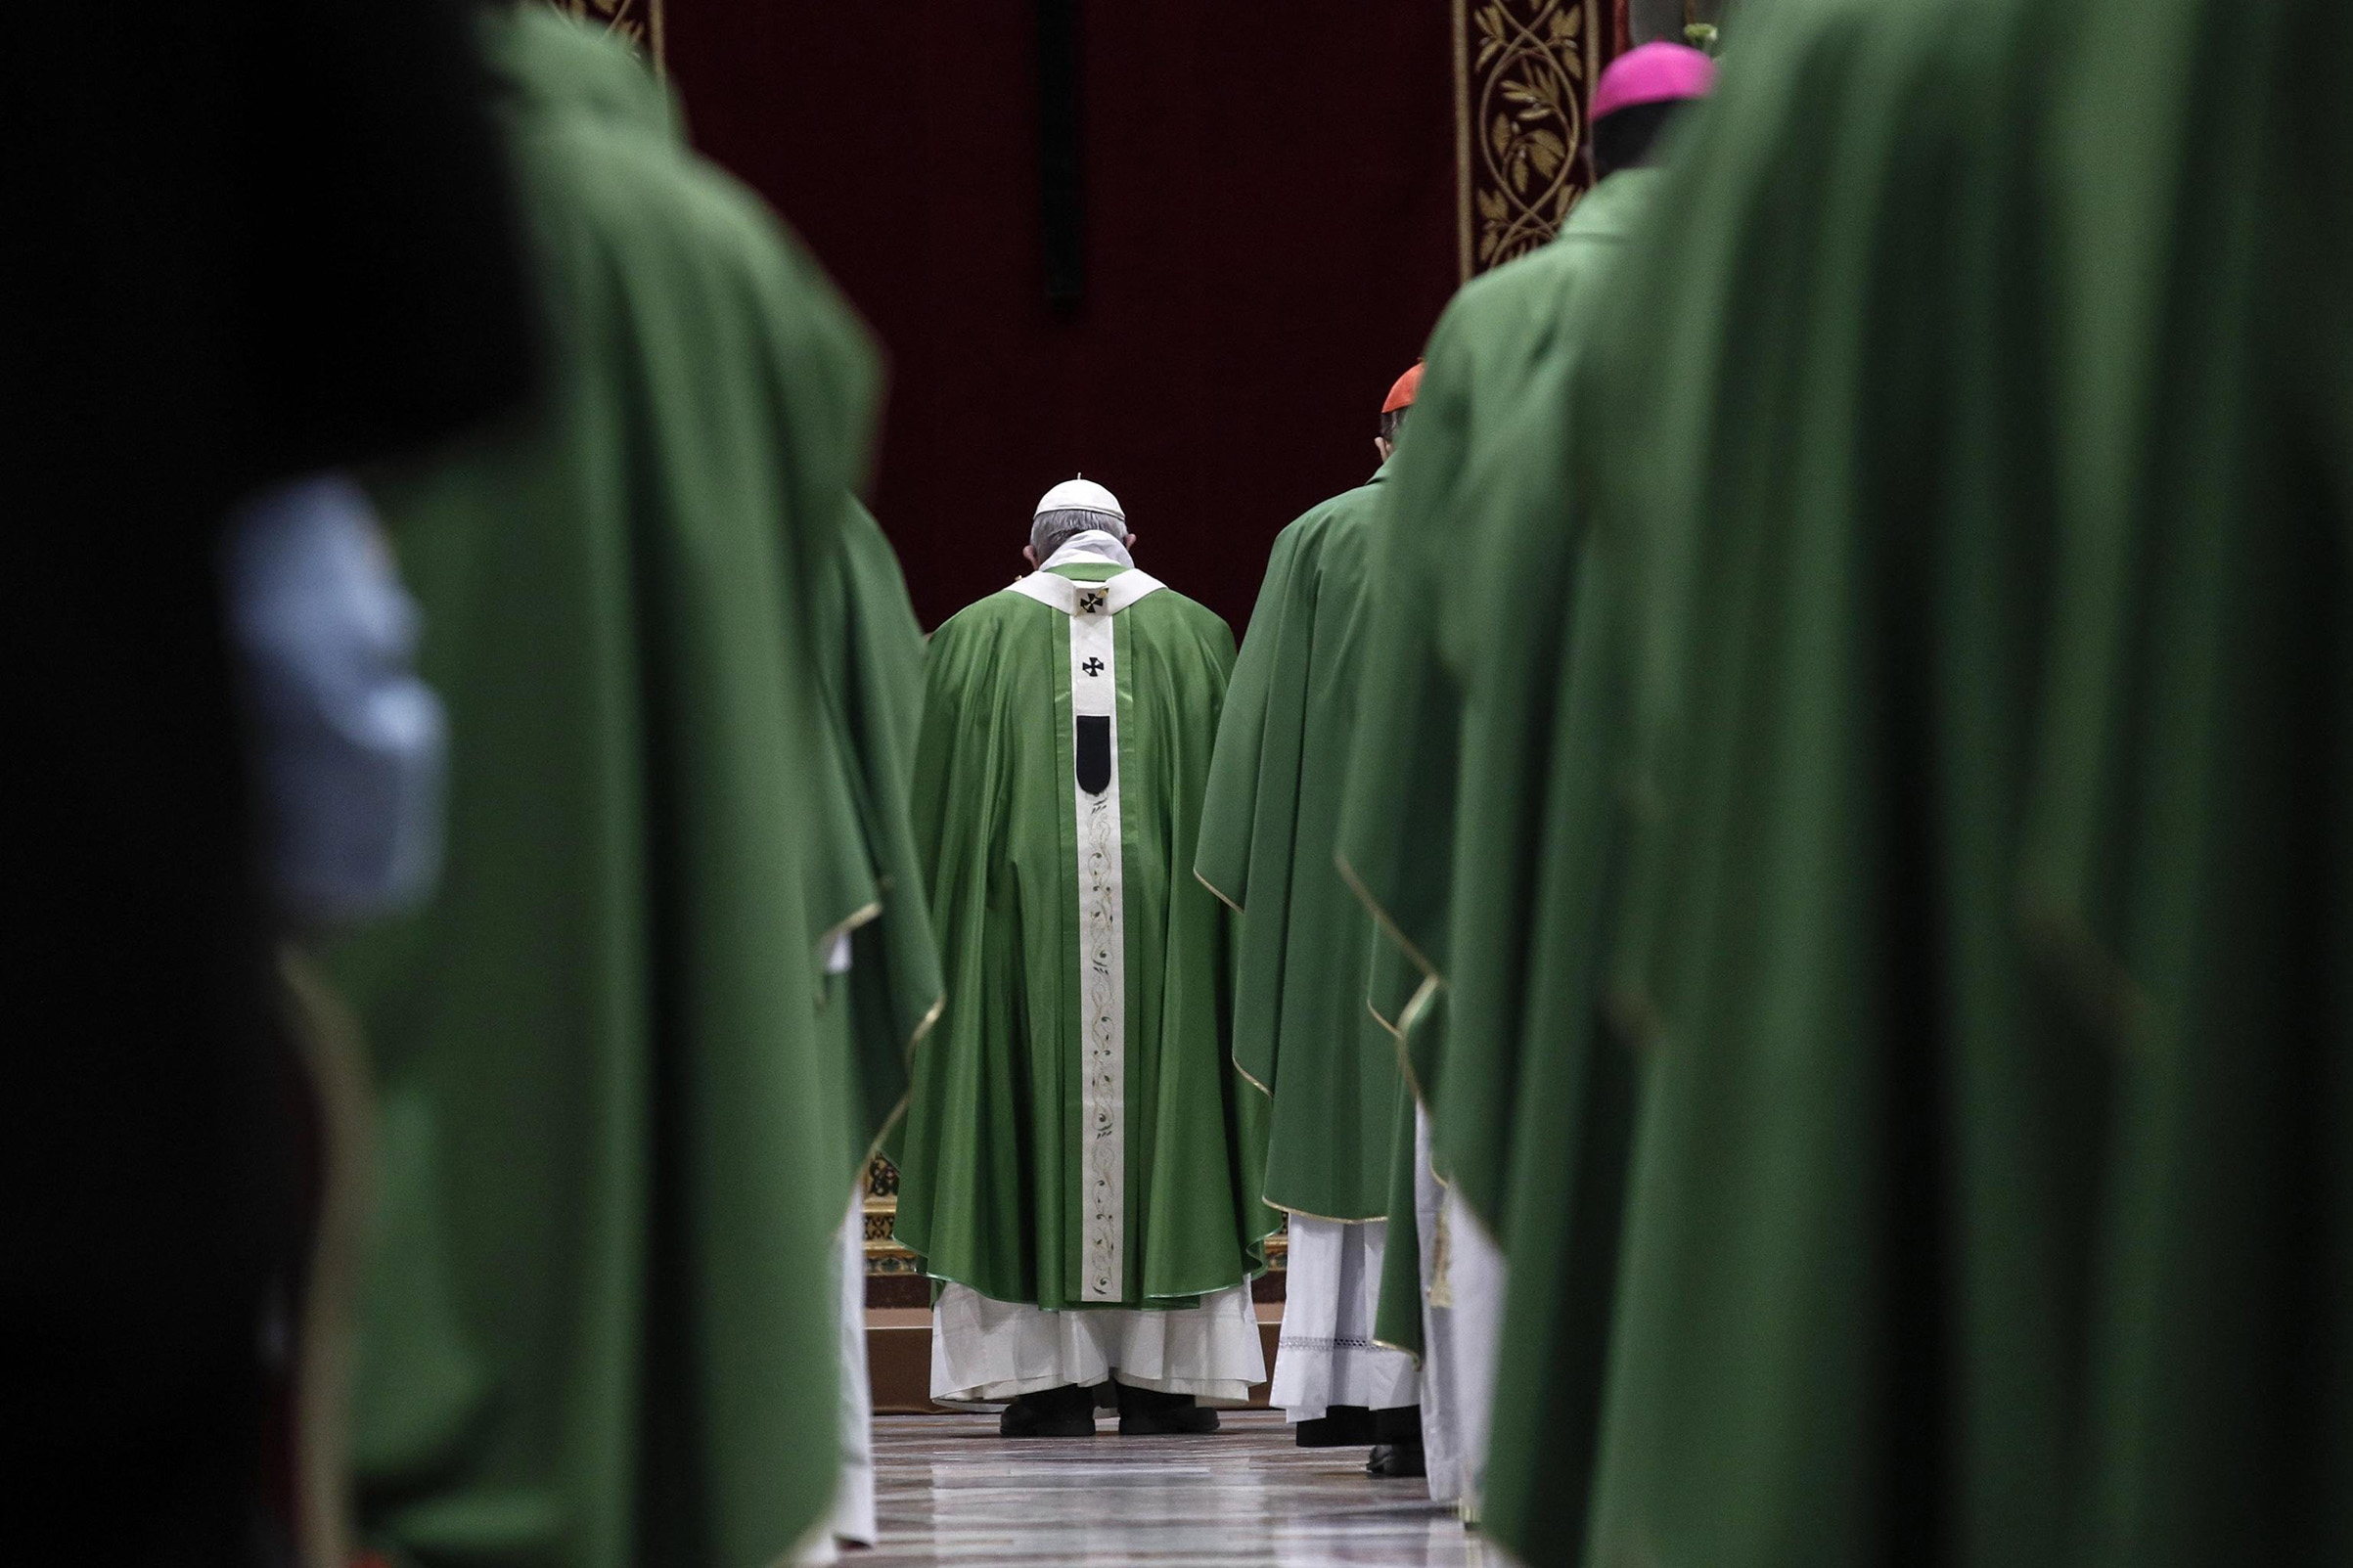 Pope Francis celebrates Mass in the Vatican on Feb. 24, the final day of his landmark sex-abuse summit